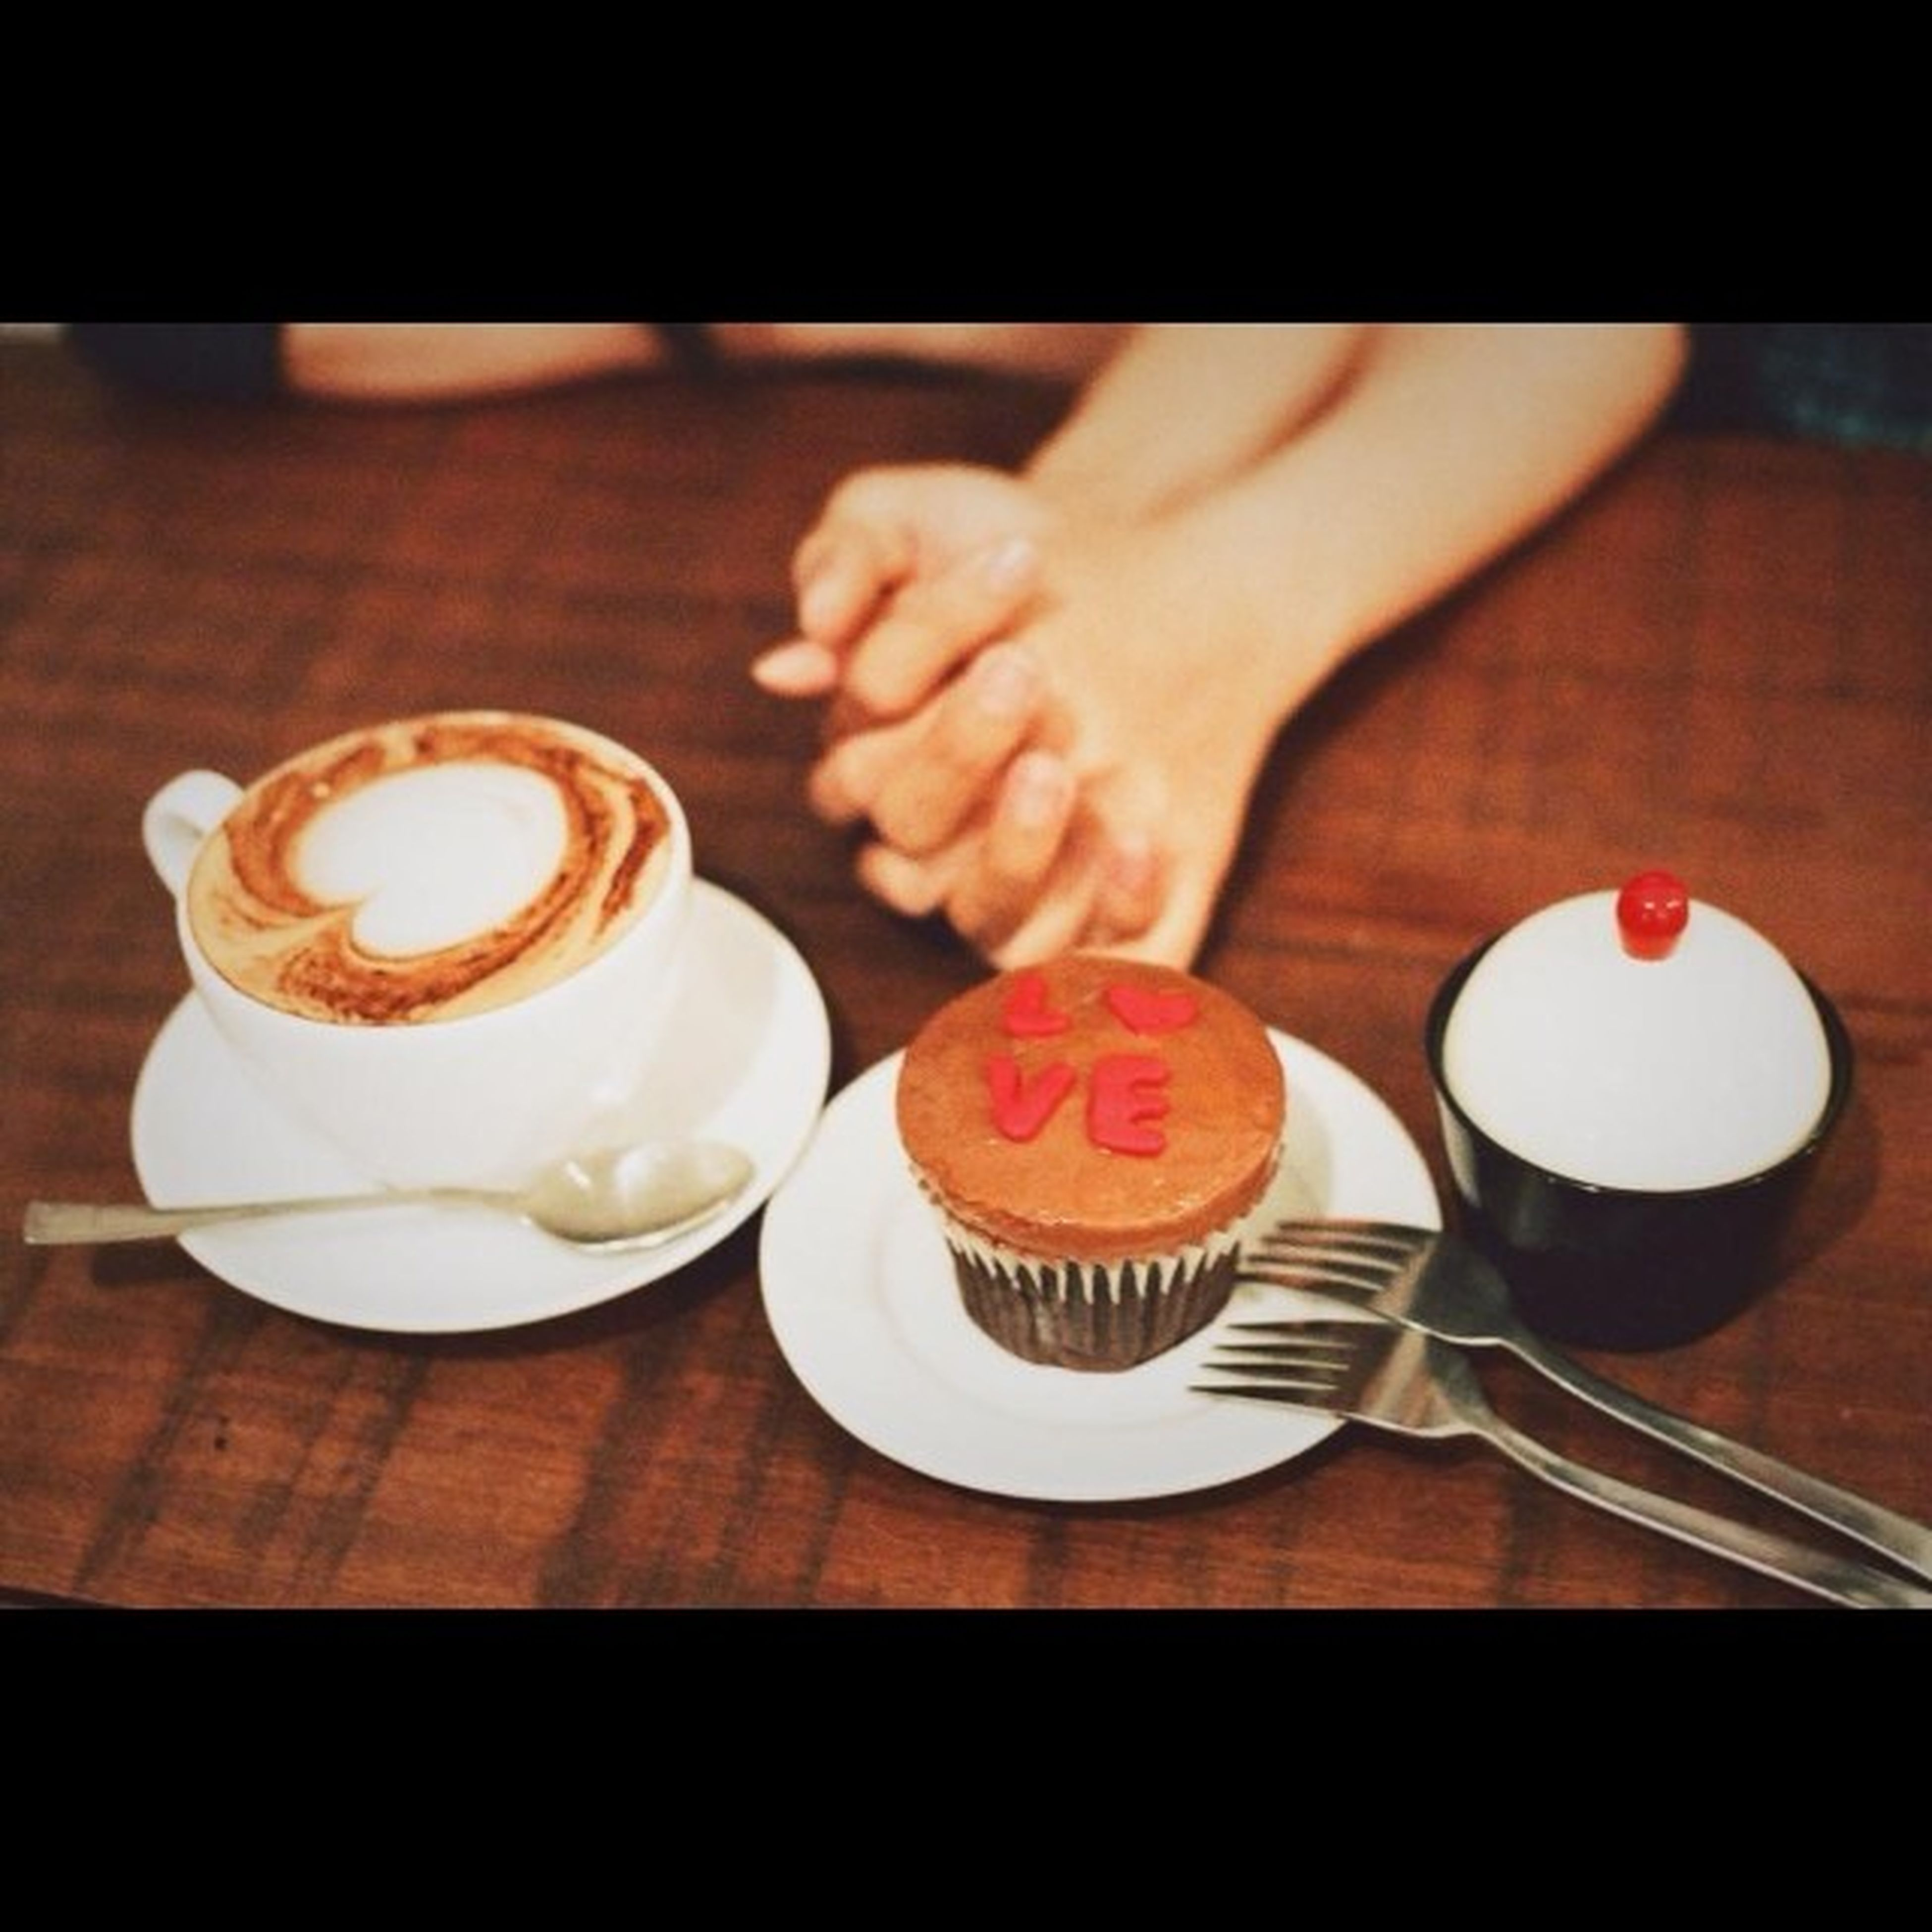 food and drink, coffee cup, drink, indoors, refreshment, table, coffee - drink, saucer, freshness, coffee, cup, cappuccino, frothy drink, still life, froth art, high angle view, spoon, breakfast, close-up, plate